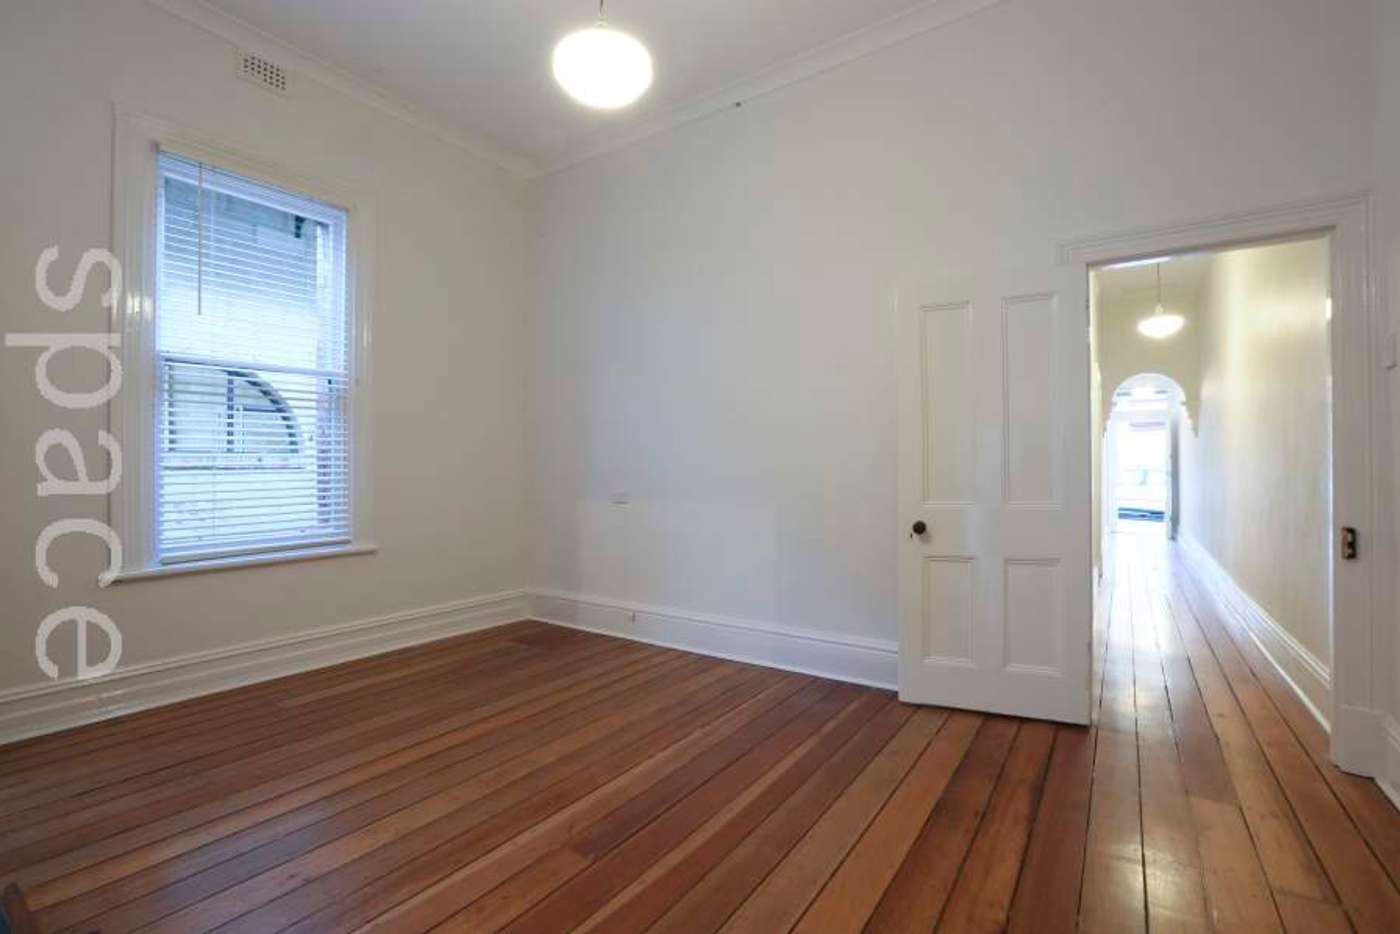 Sixth view of Homely house listing, 16 Little Howard Street, Fremantle WA 6160